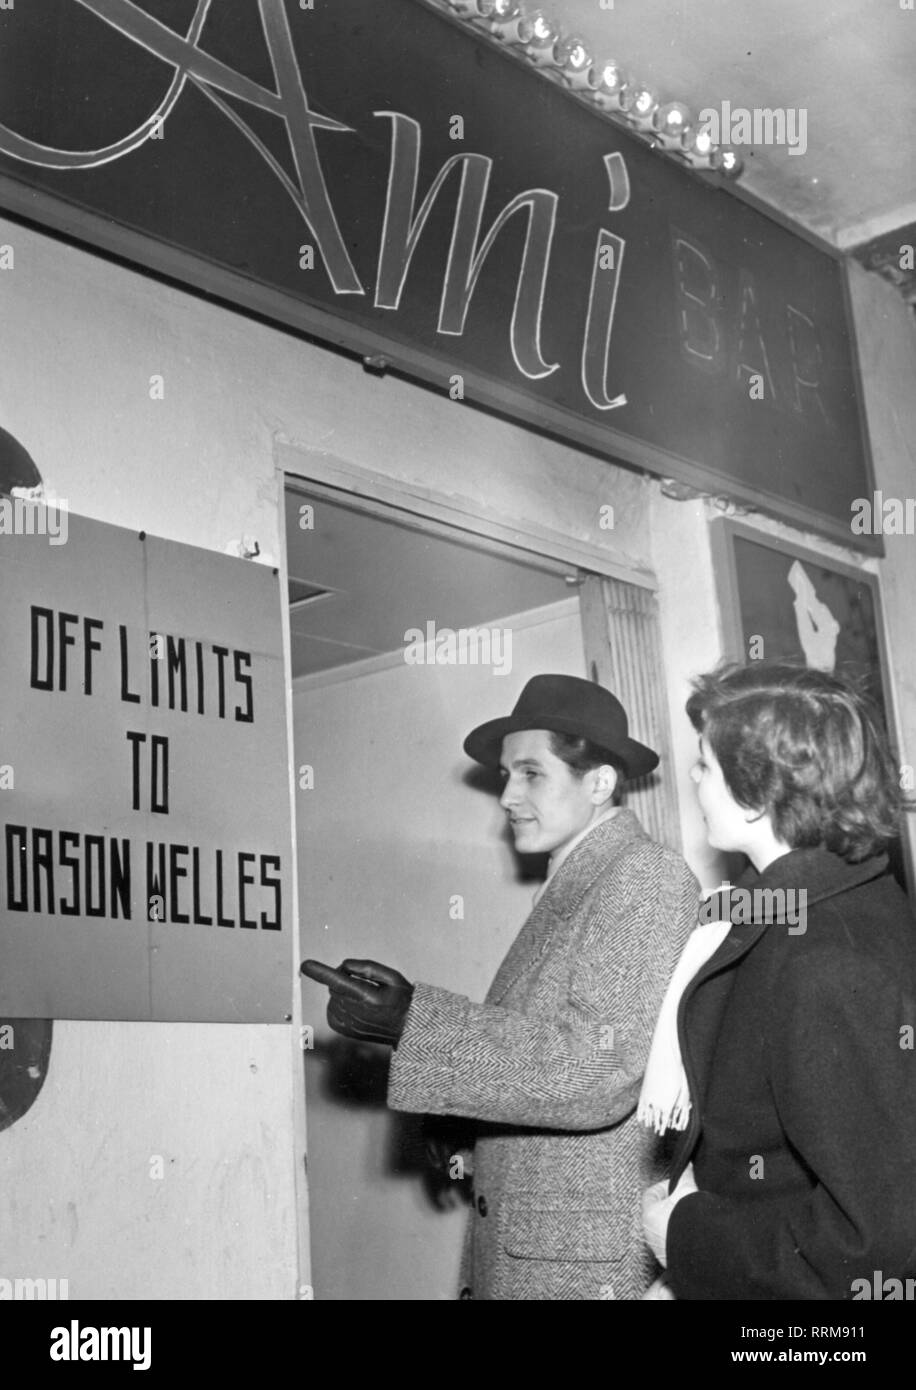 Welles, Orson, 6.5.1915 - 10.10.1985, American actor and director, nightclub with prohibition sign after derogatory remarks about Berlin nightspots, Berlin, November 1950, Additional-Rights-Clearance-Info-Not-Available - Stock Image